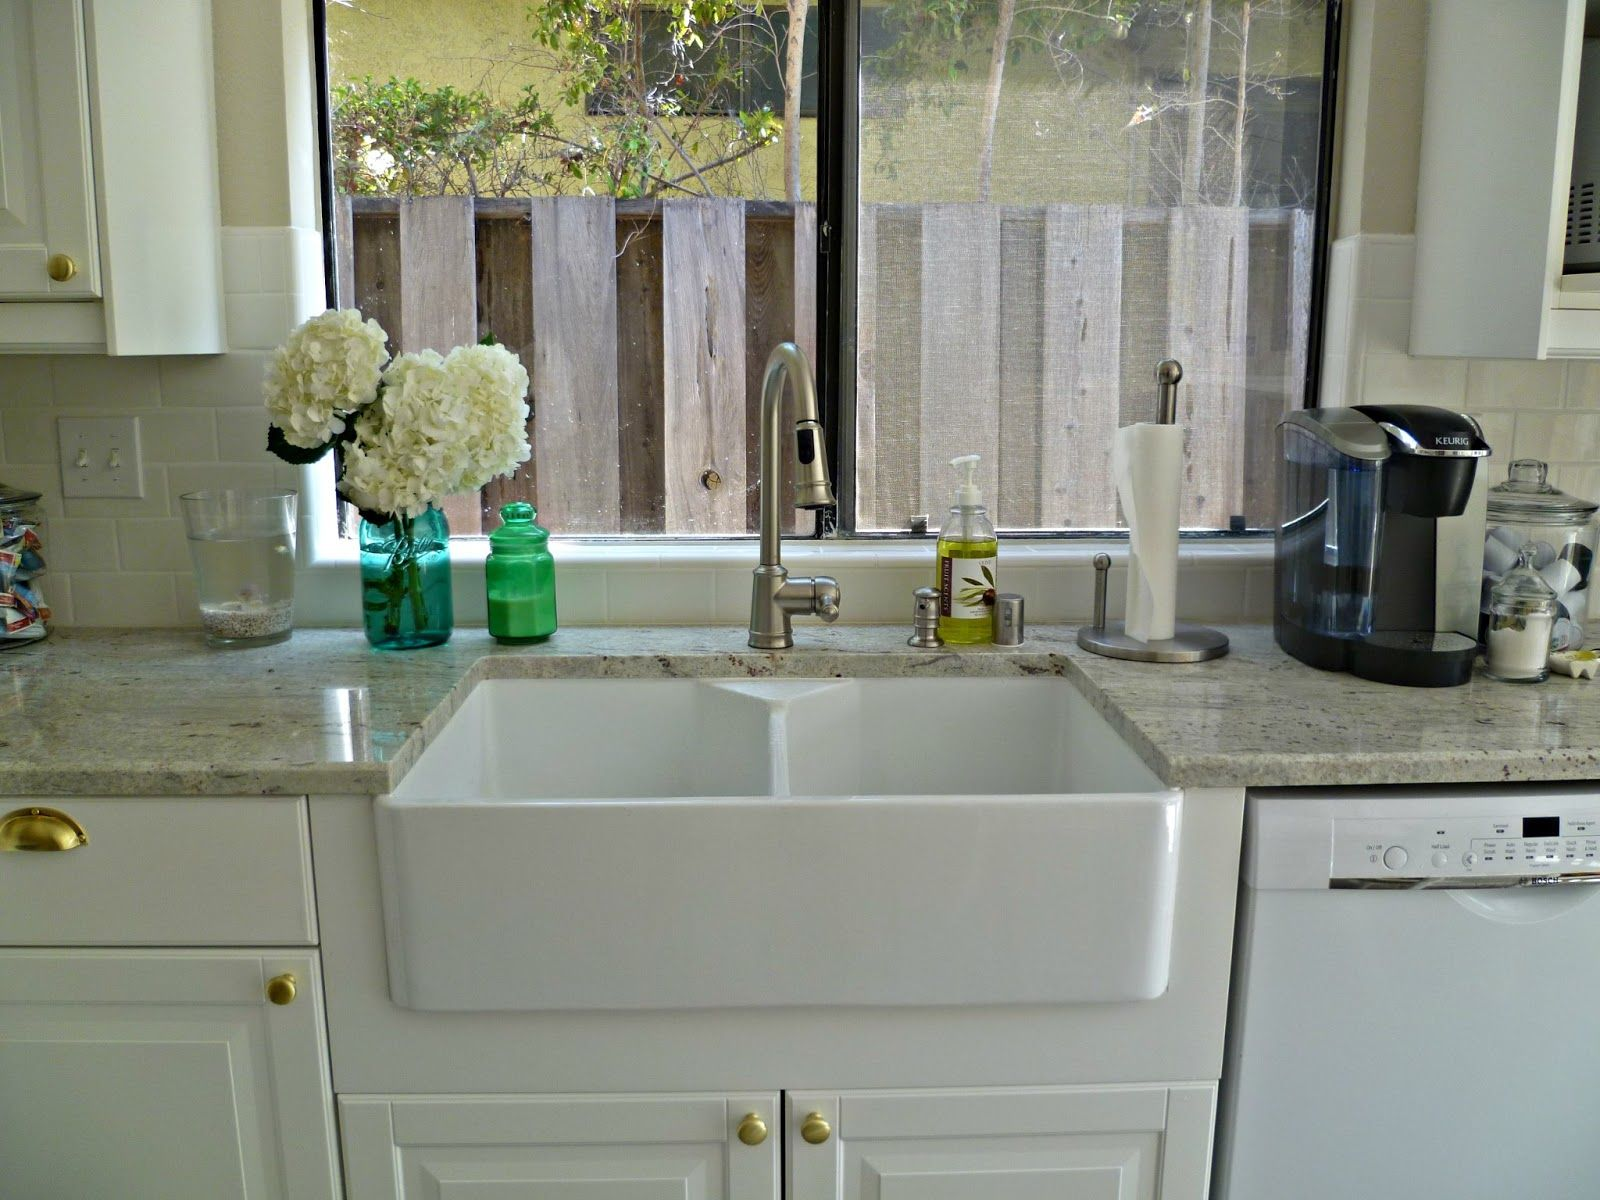 Kitchen Sinks With Granite Countertops Farmhouse Sinks With Graniter Tops Panels Double Porcelain